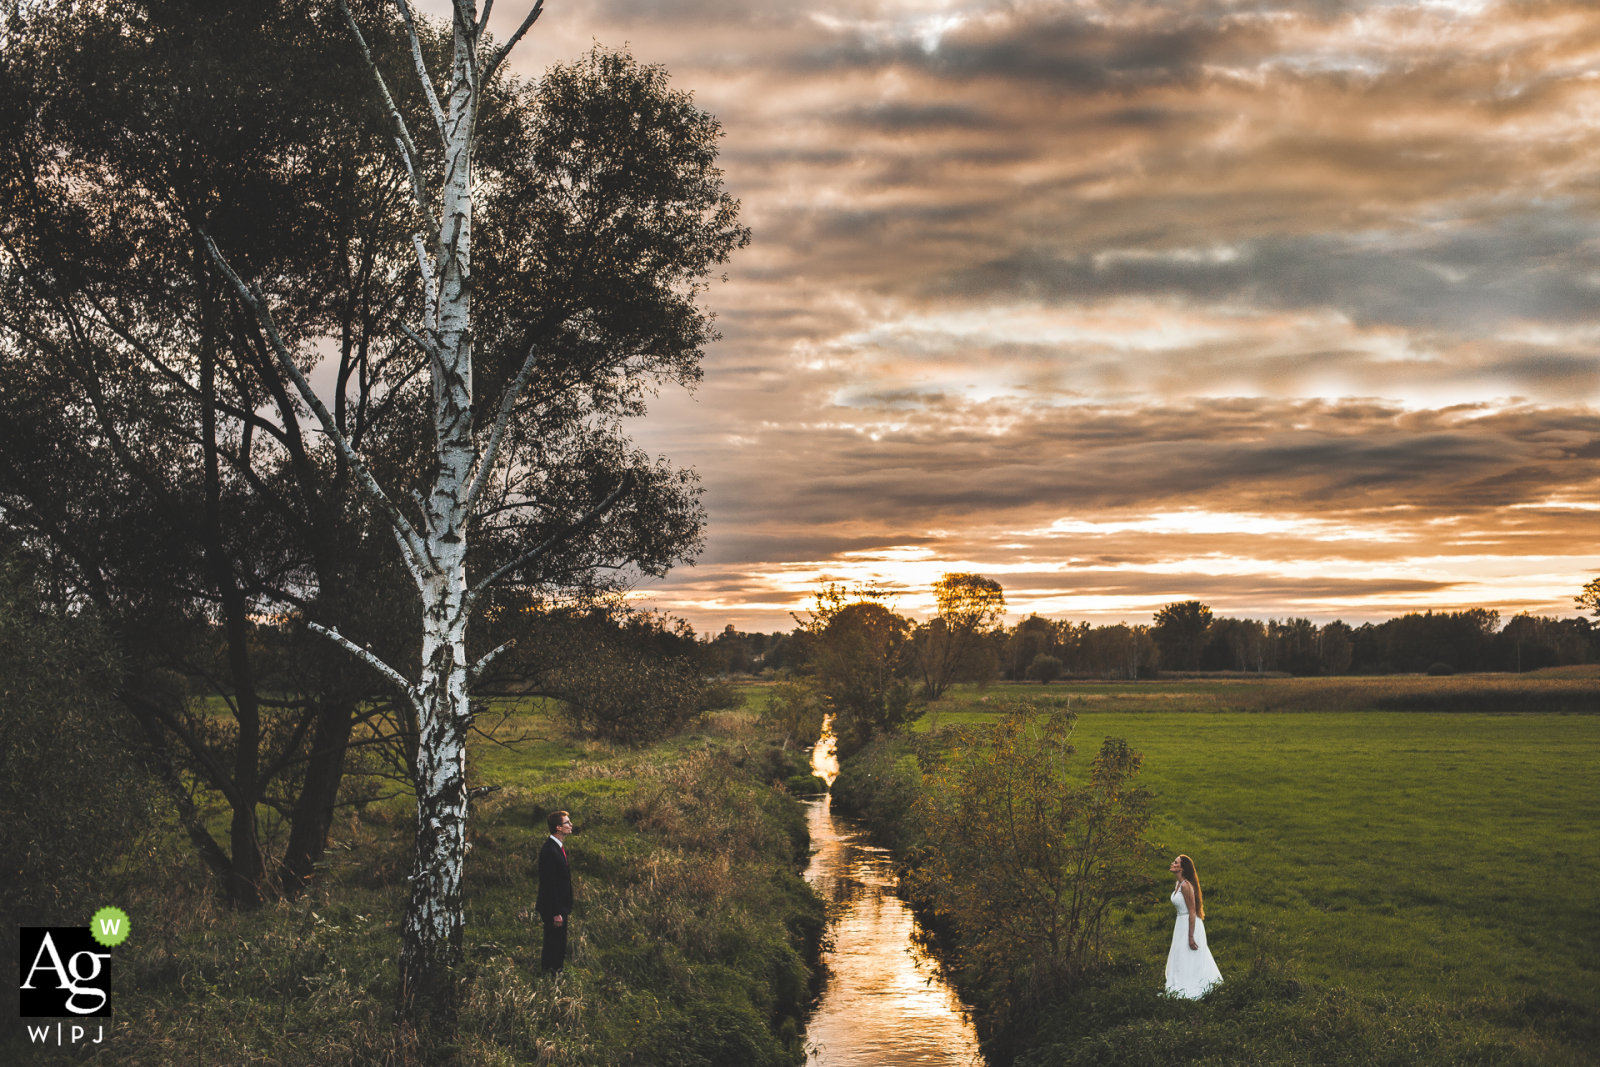 Grotniki, Lodzkie, Poland couple posing for a wedding picture over a small river with big trees and clouds